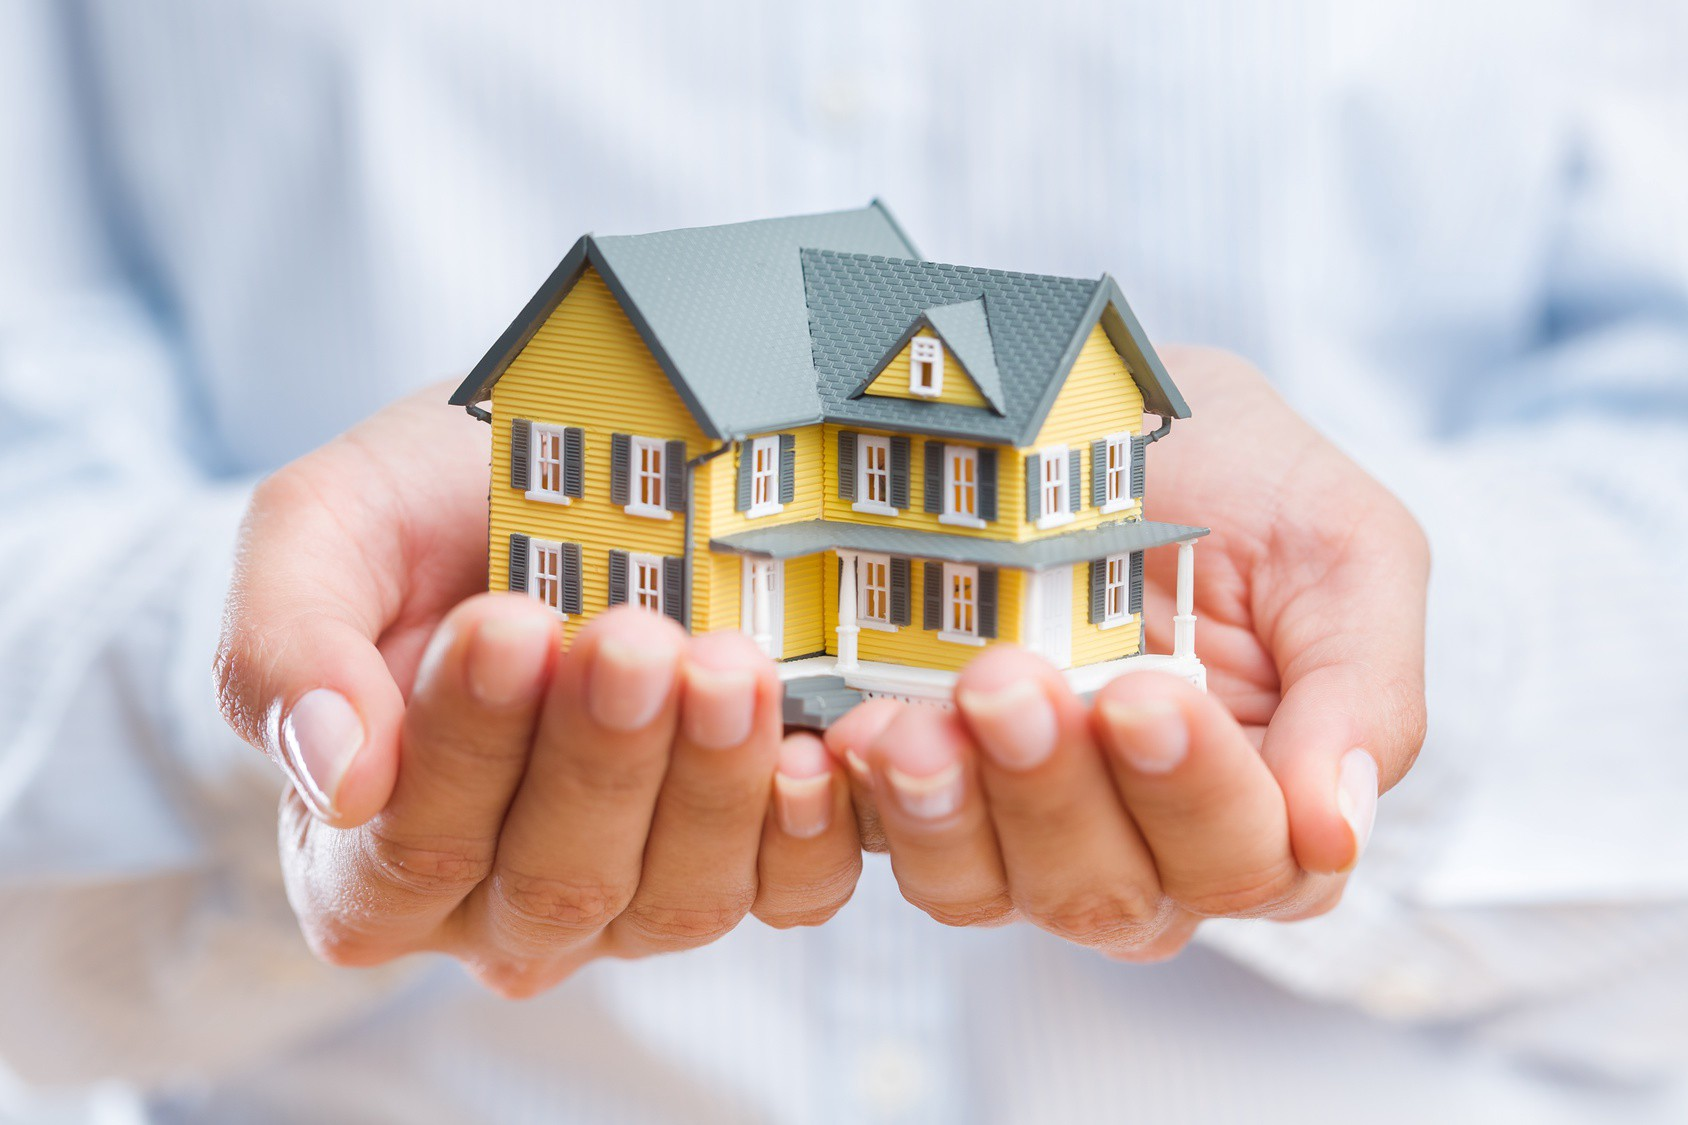 The main advantage of commercial property insurance